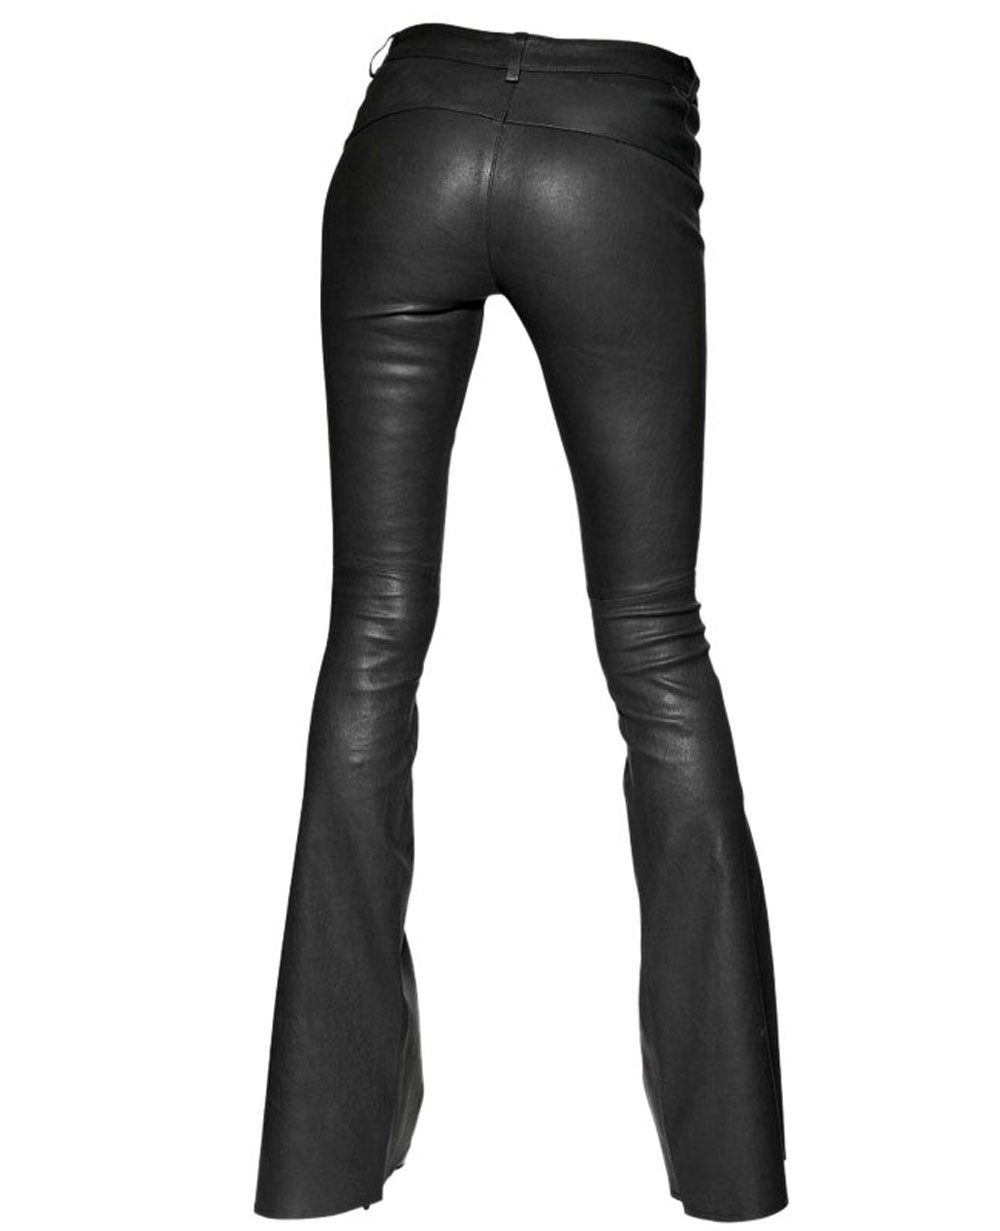 RETRO BOOTCUT LEATHER PANTS FOR WOMEN